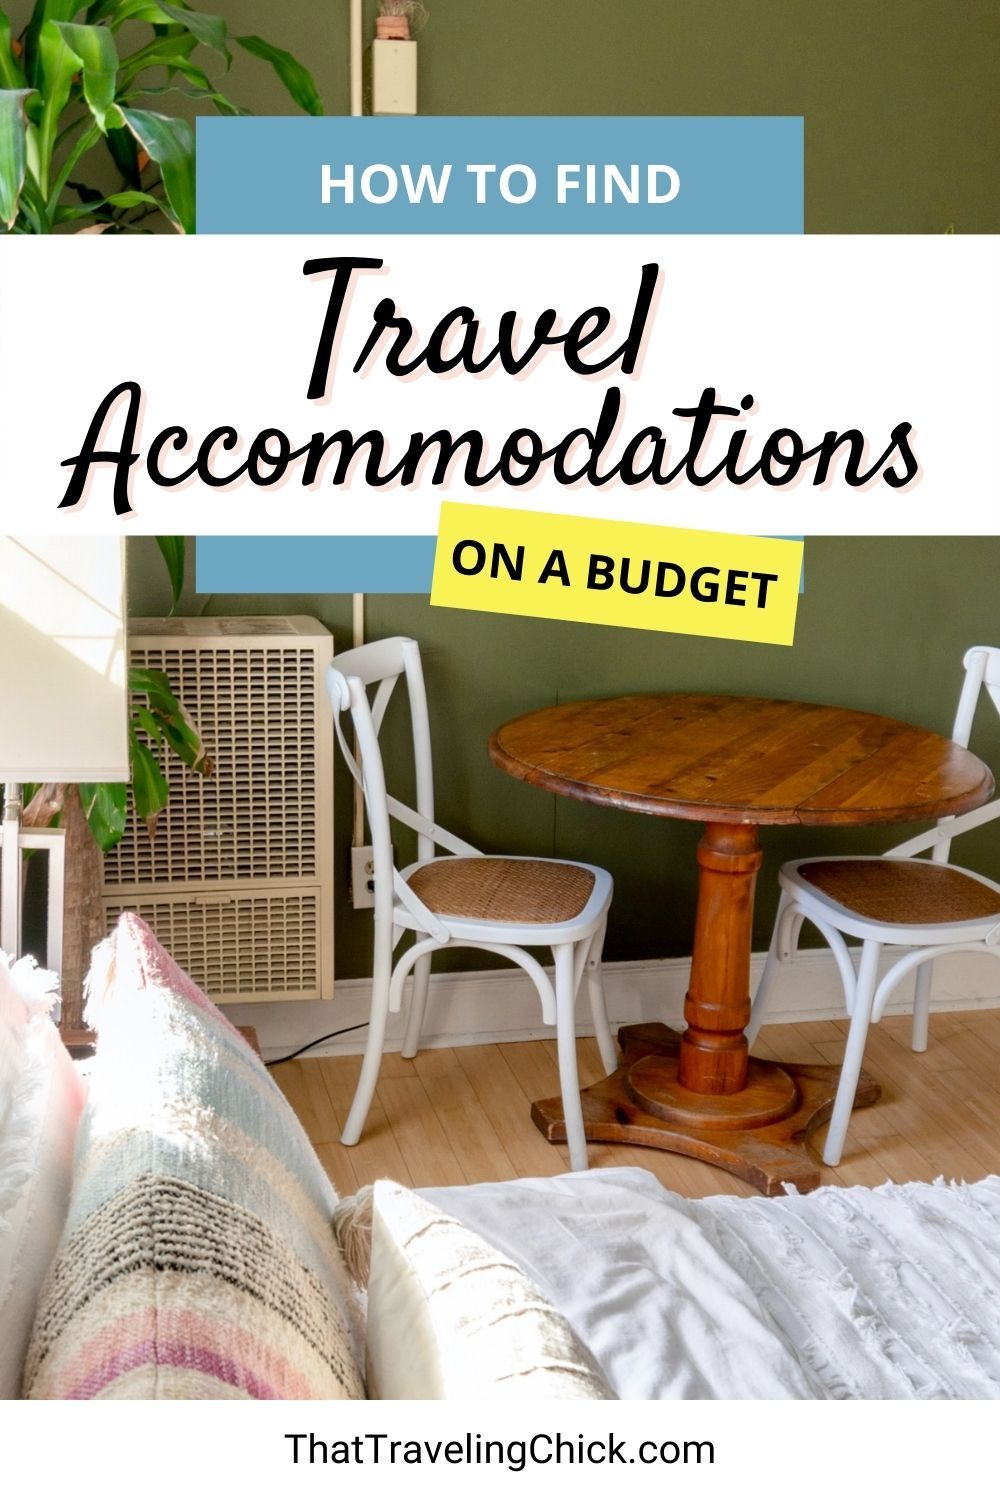 How to Find Travel Accommodations on a Budget #cheaptravelaccommodations #cheapaccommodations